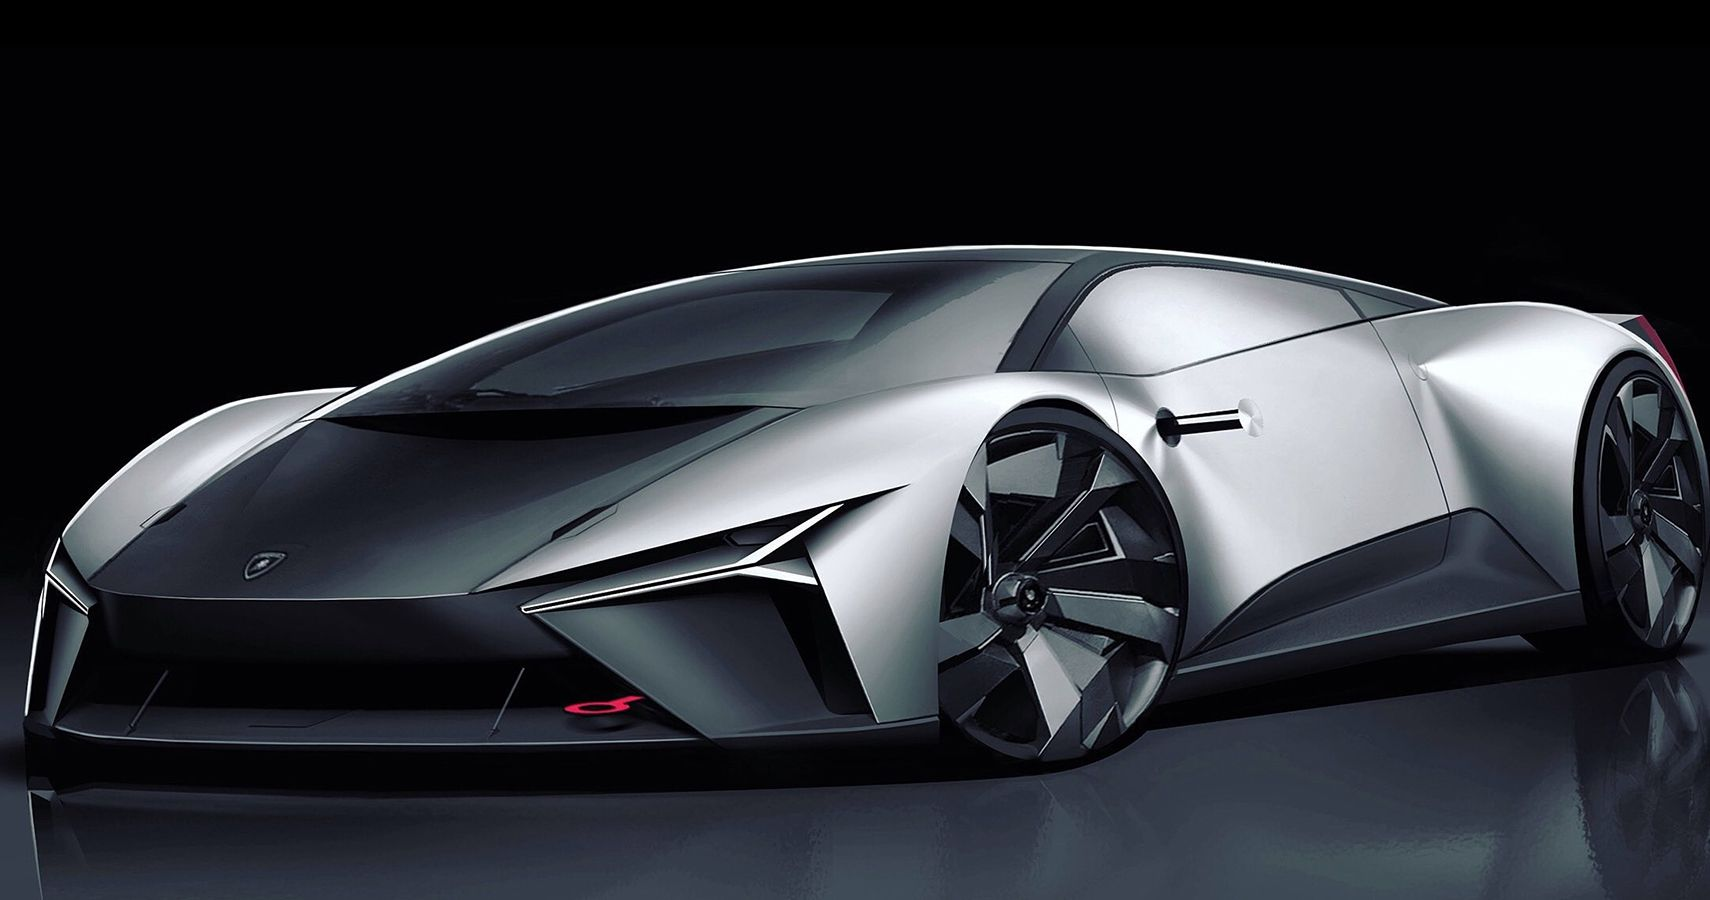 This Is How An All-Electric Lamborghini Might Look Like, According To Car Designer's Renders